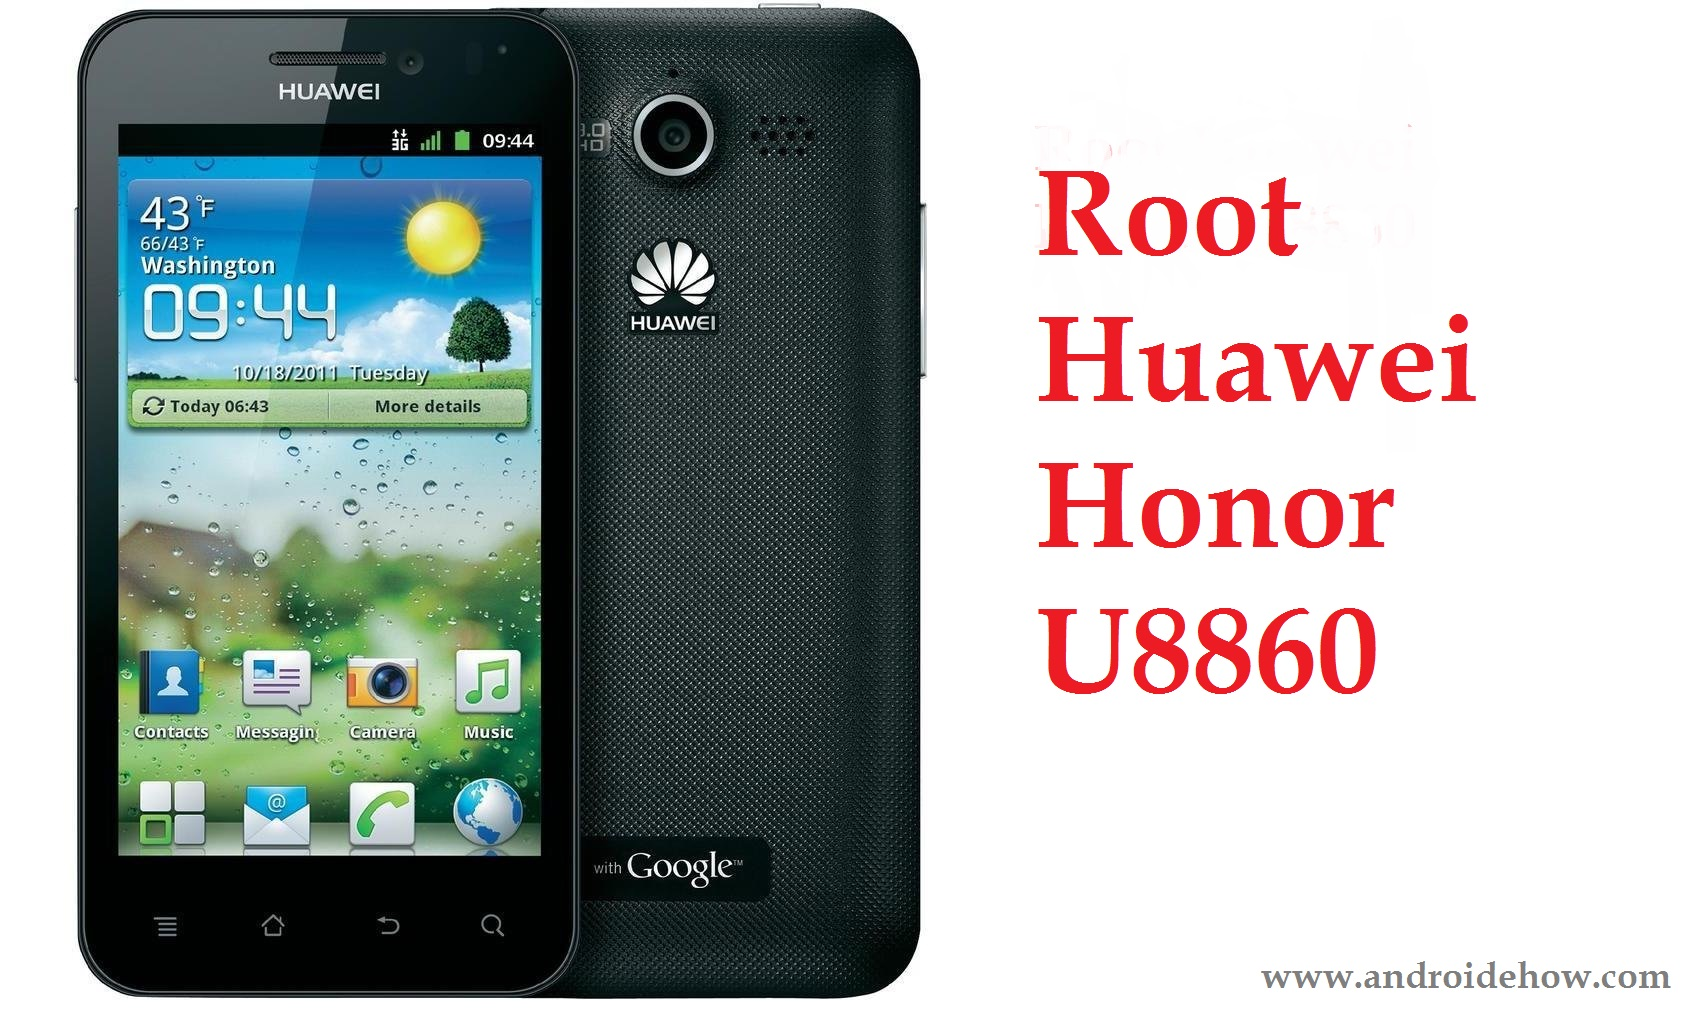 Huawei Honor U8860 - Root Huawei Honor U8860 with your PC Step by Step ( Easy Guide)